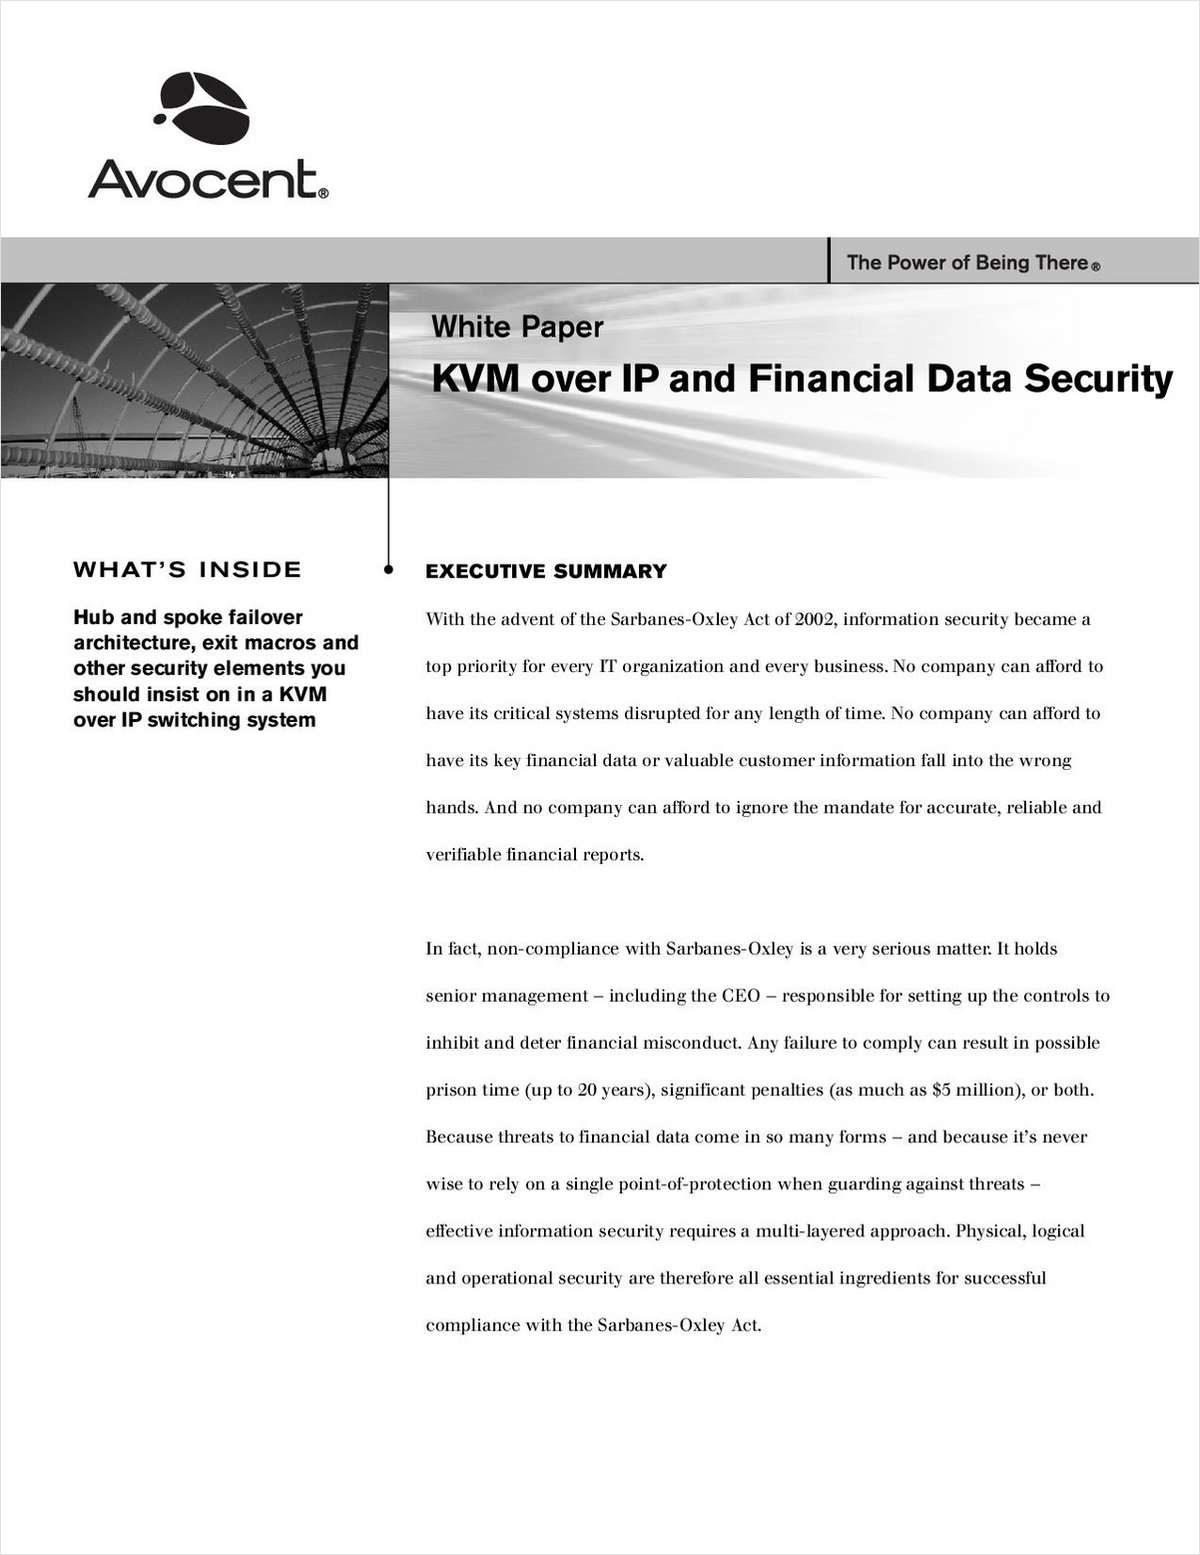 KVM over IP and Financial Data Security